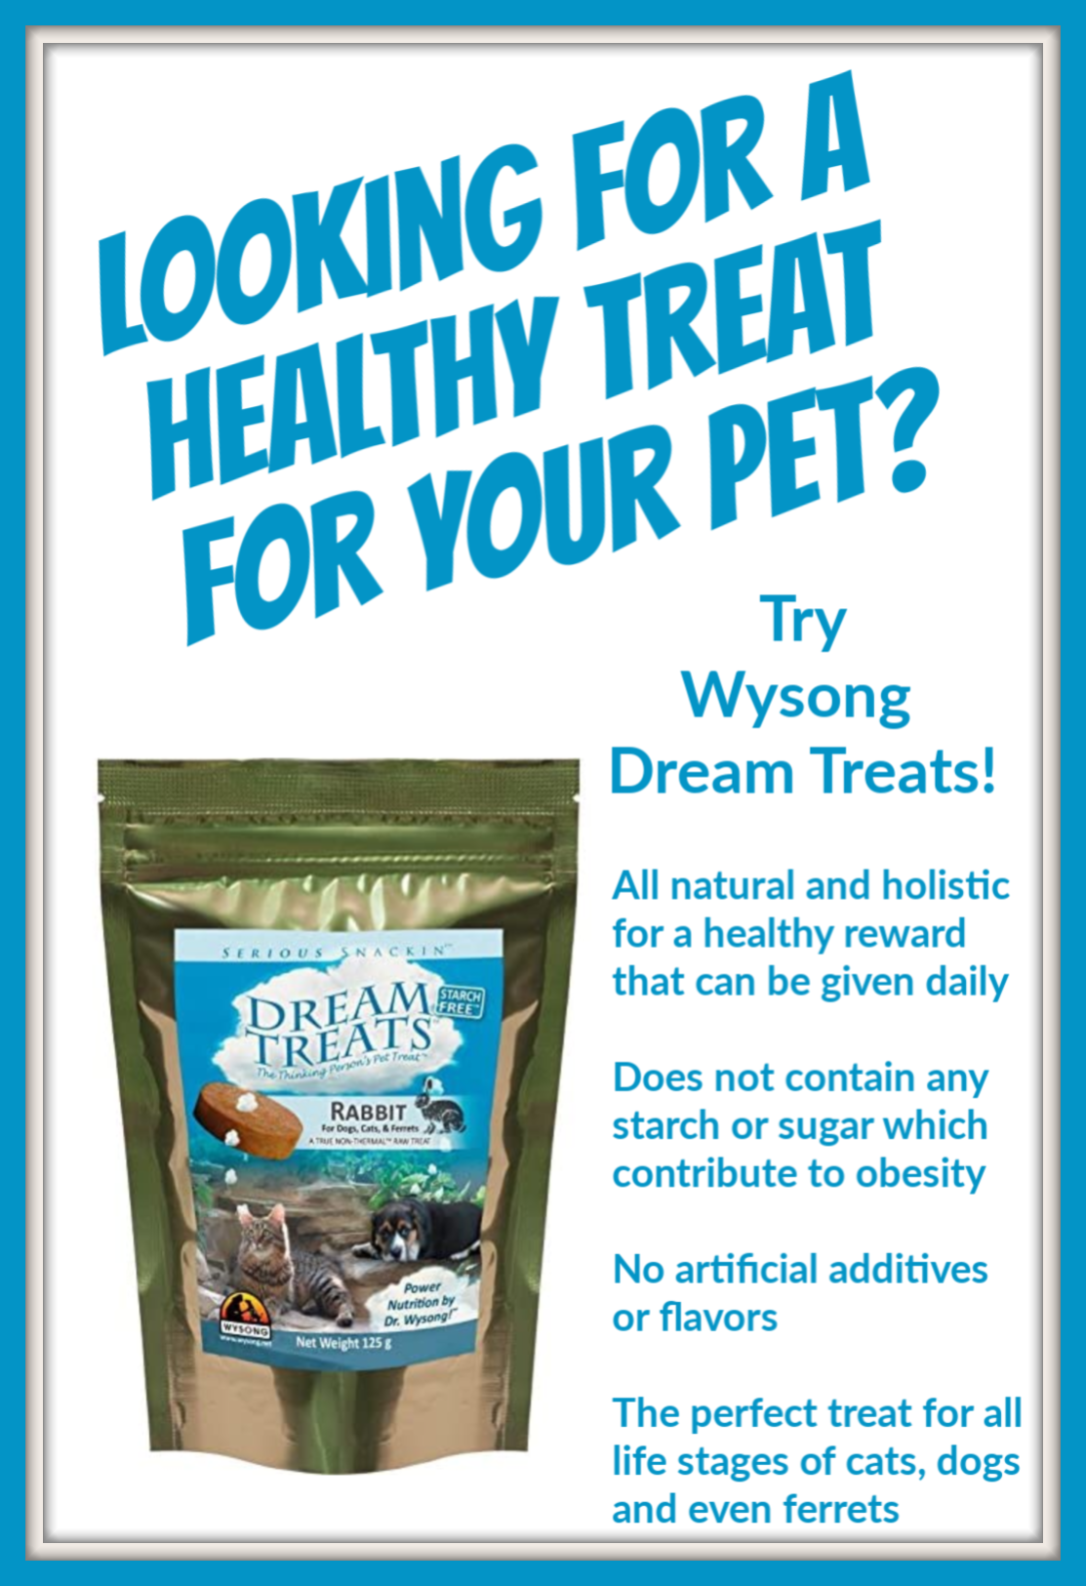 Wysong Dream Treats Review in 2020 Pet hacks, Pet